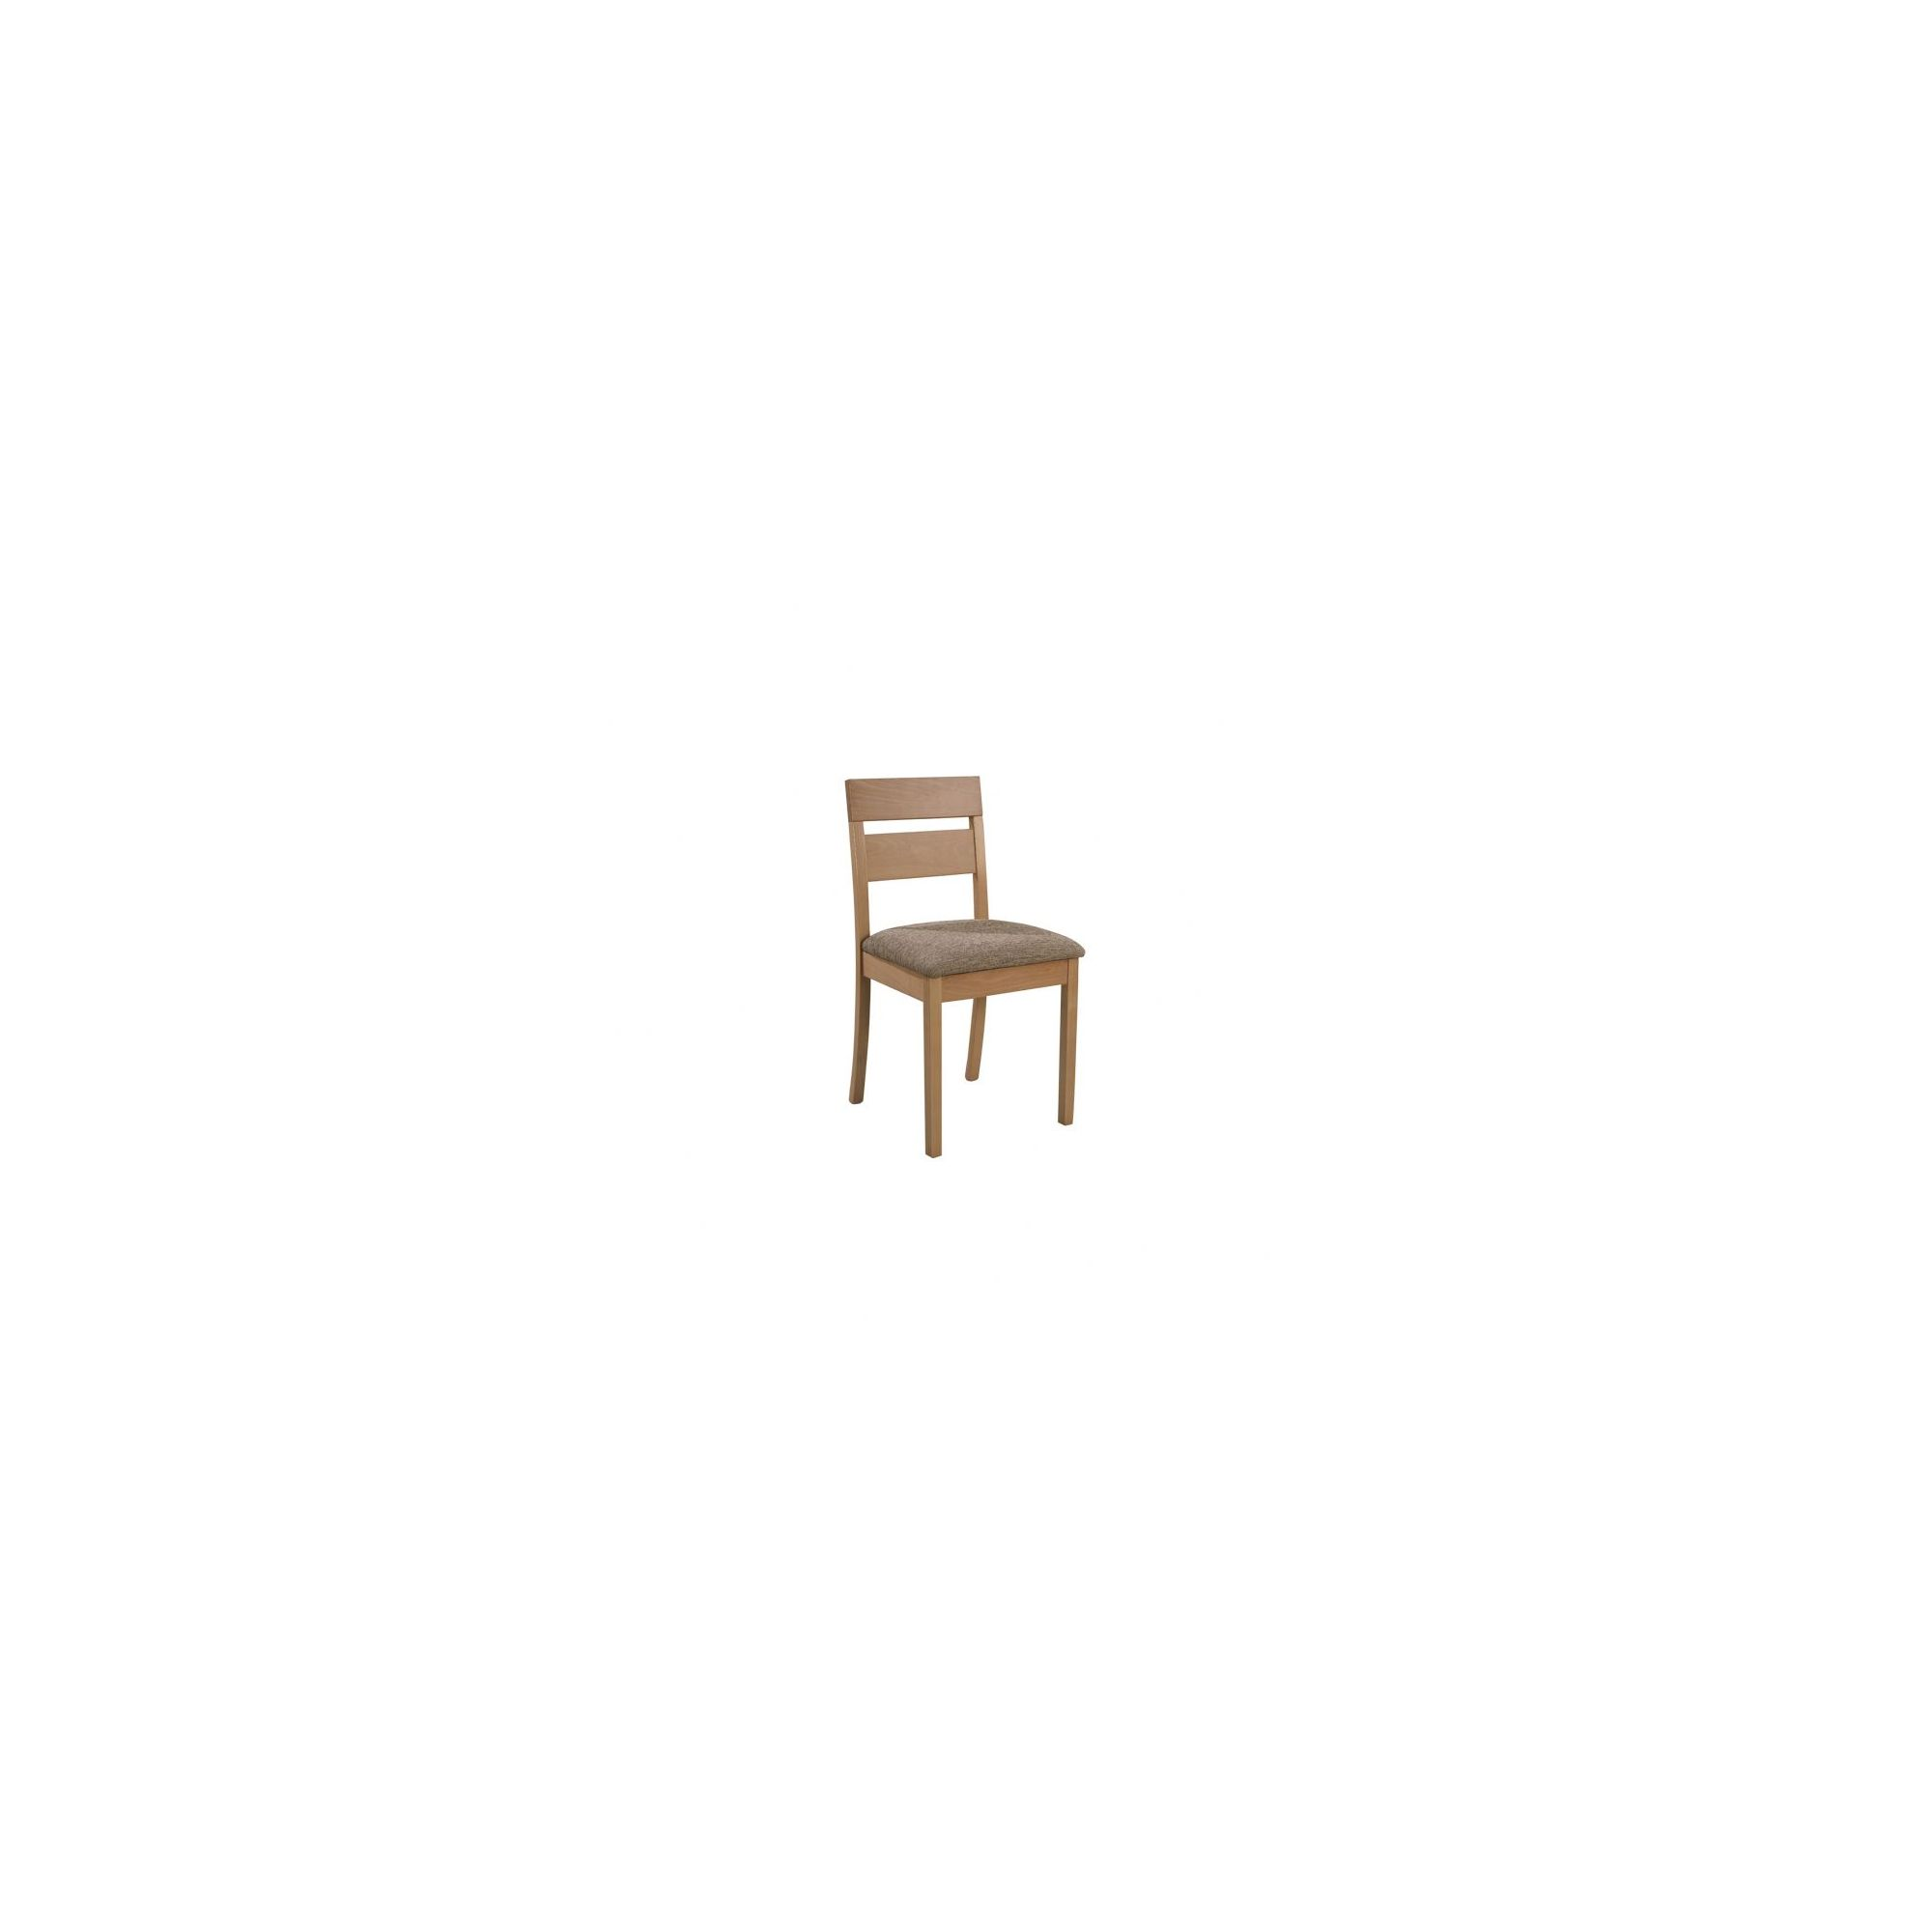 Sutcliffe Furniture Casual Dining Leighton Ladder Back Dining Chair (Set of 2) - Beige - English Oak